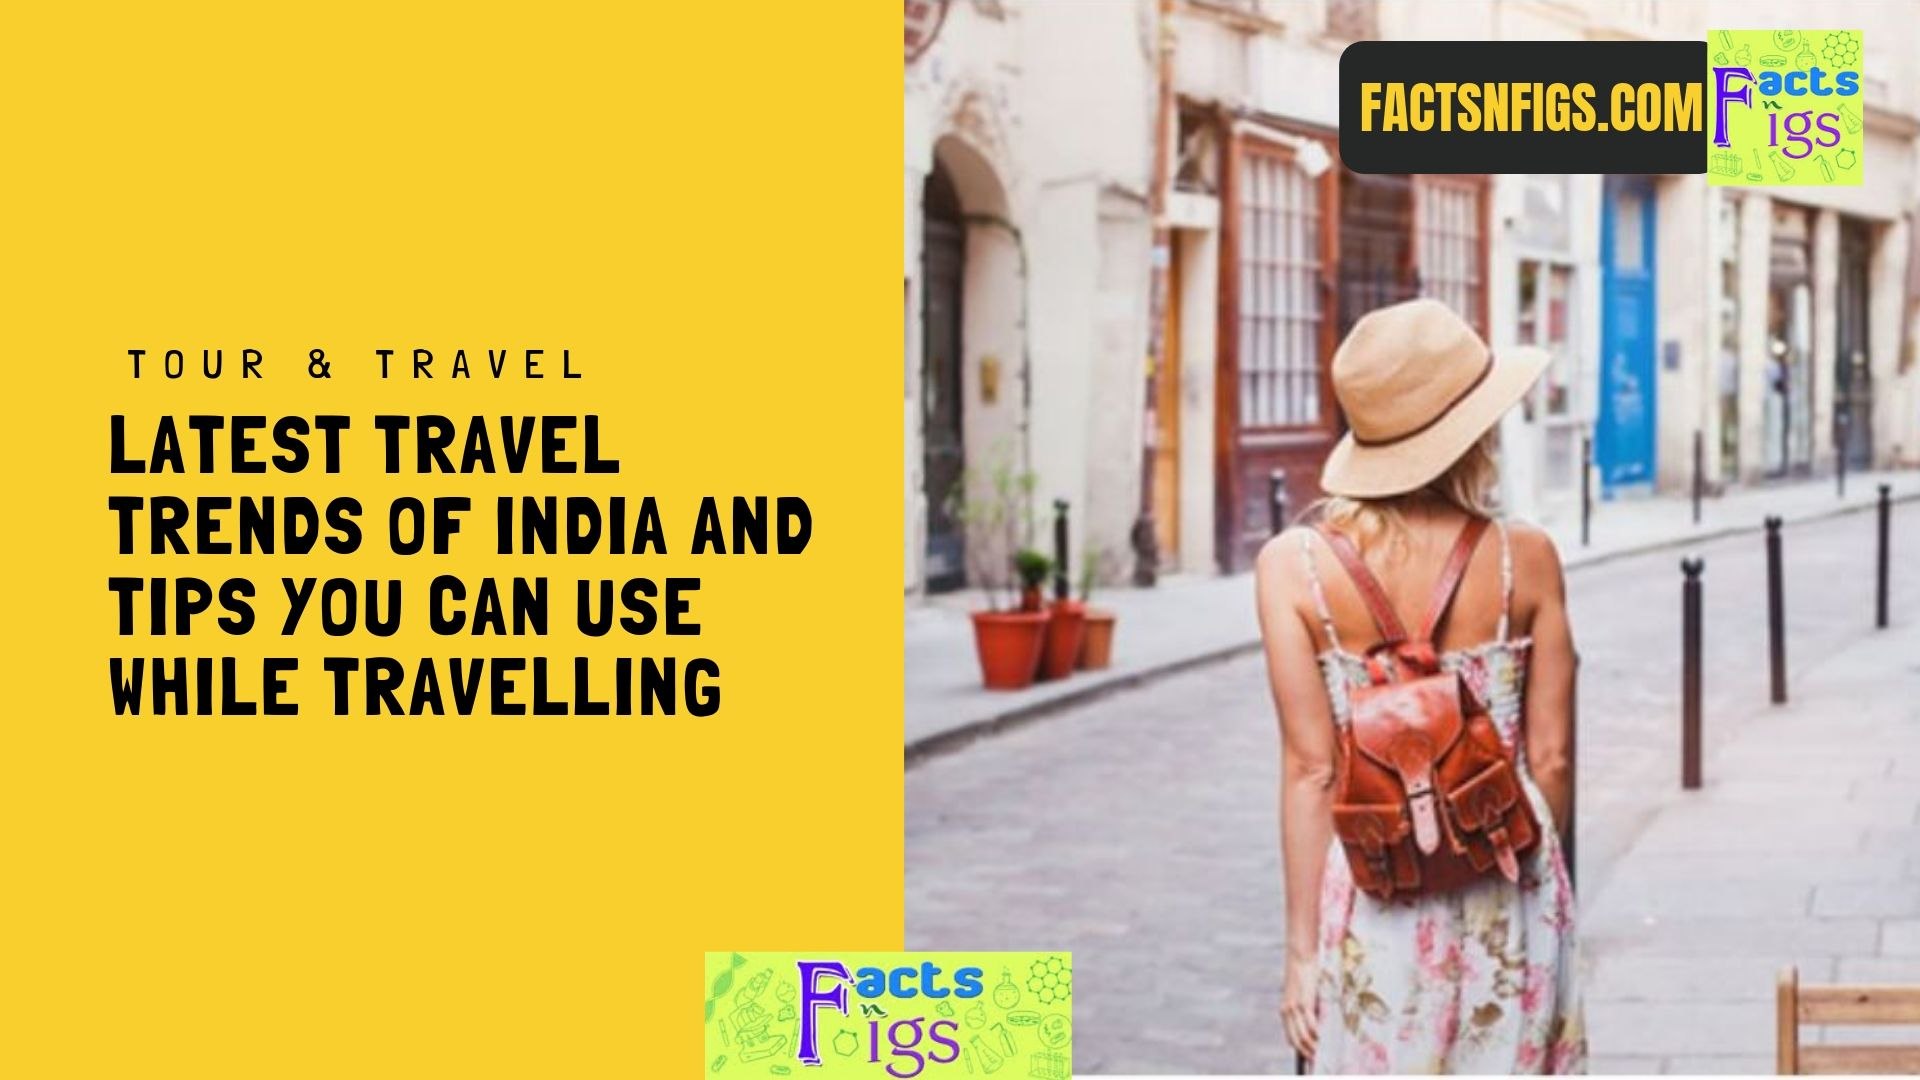 LATEST TRAVEL TRENDS OF INDIA AND TIPS YOU CAN USE WHILE TRAVELLING